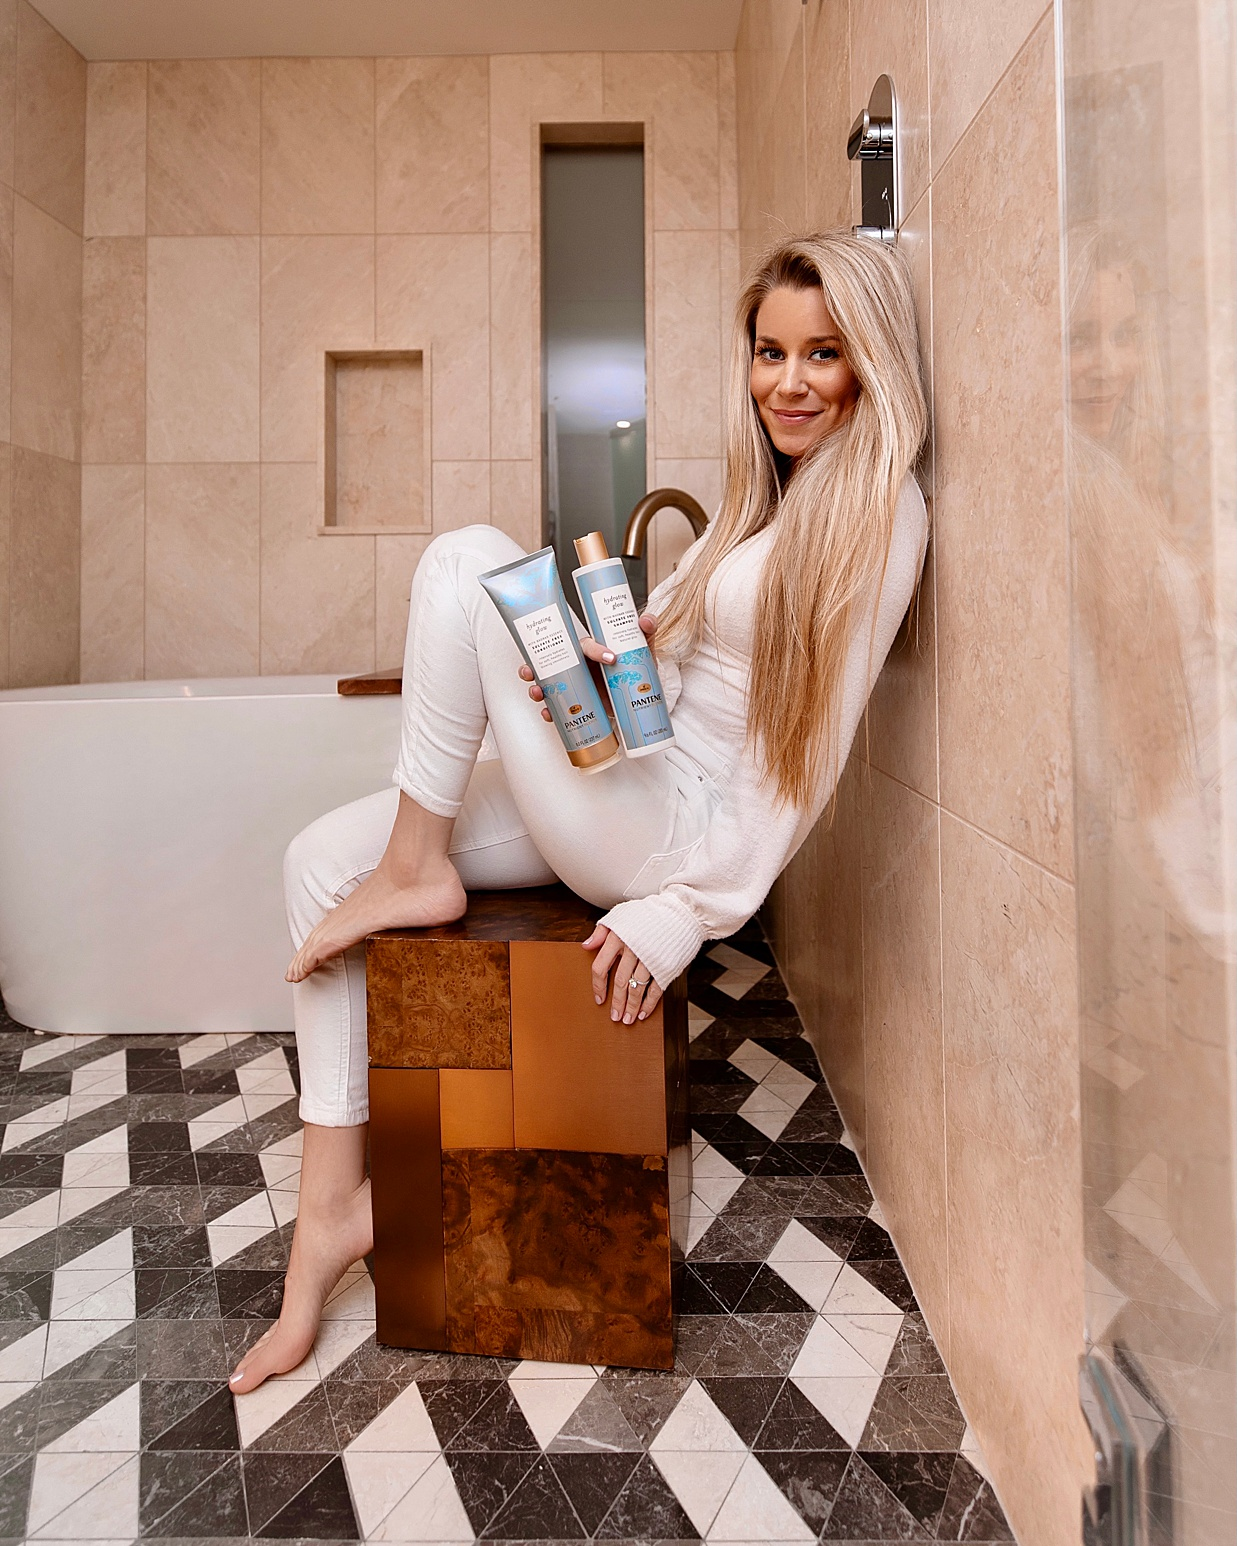 pantene, pantene shampoo, long hair tips, best shampoo for long hair, best conditioner for long hair, how to grow long hair, olivia rink hair, olivia rink shampoo, olivia rink shampoo and conditioner, olivia rink hair products